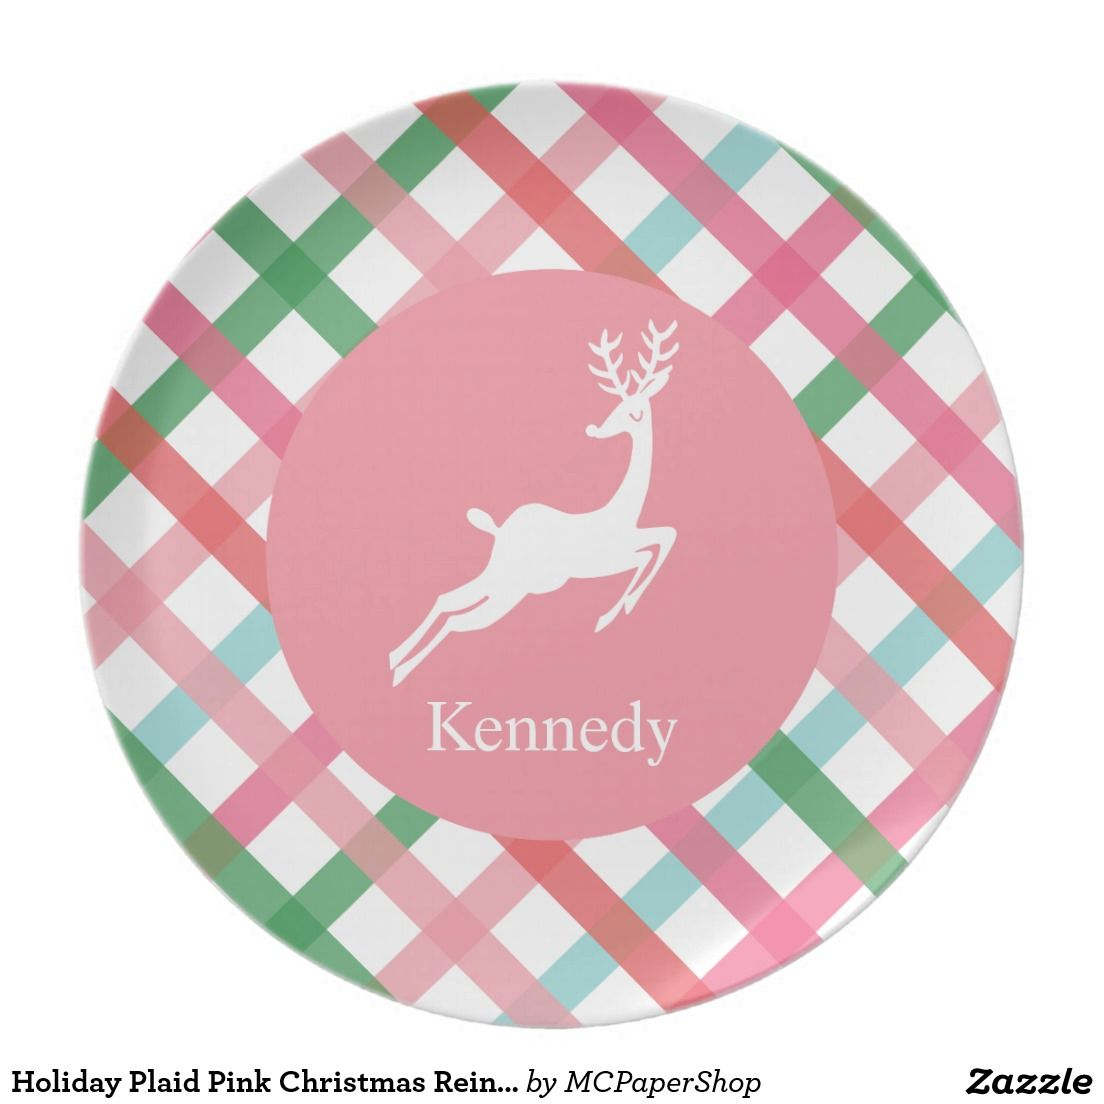 Holiday Plaid Pink Christmas Reindeer Personalize Melamine Plate Sc 1 St Pinterest  sc 1 st  pezcame.com & Holiday Melamine Plates \u0026 Threshold CHRISTMAS Tree Holiday Santa ...